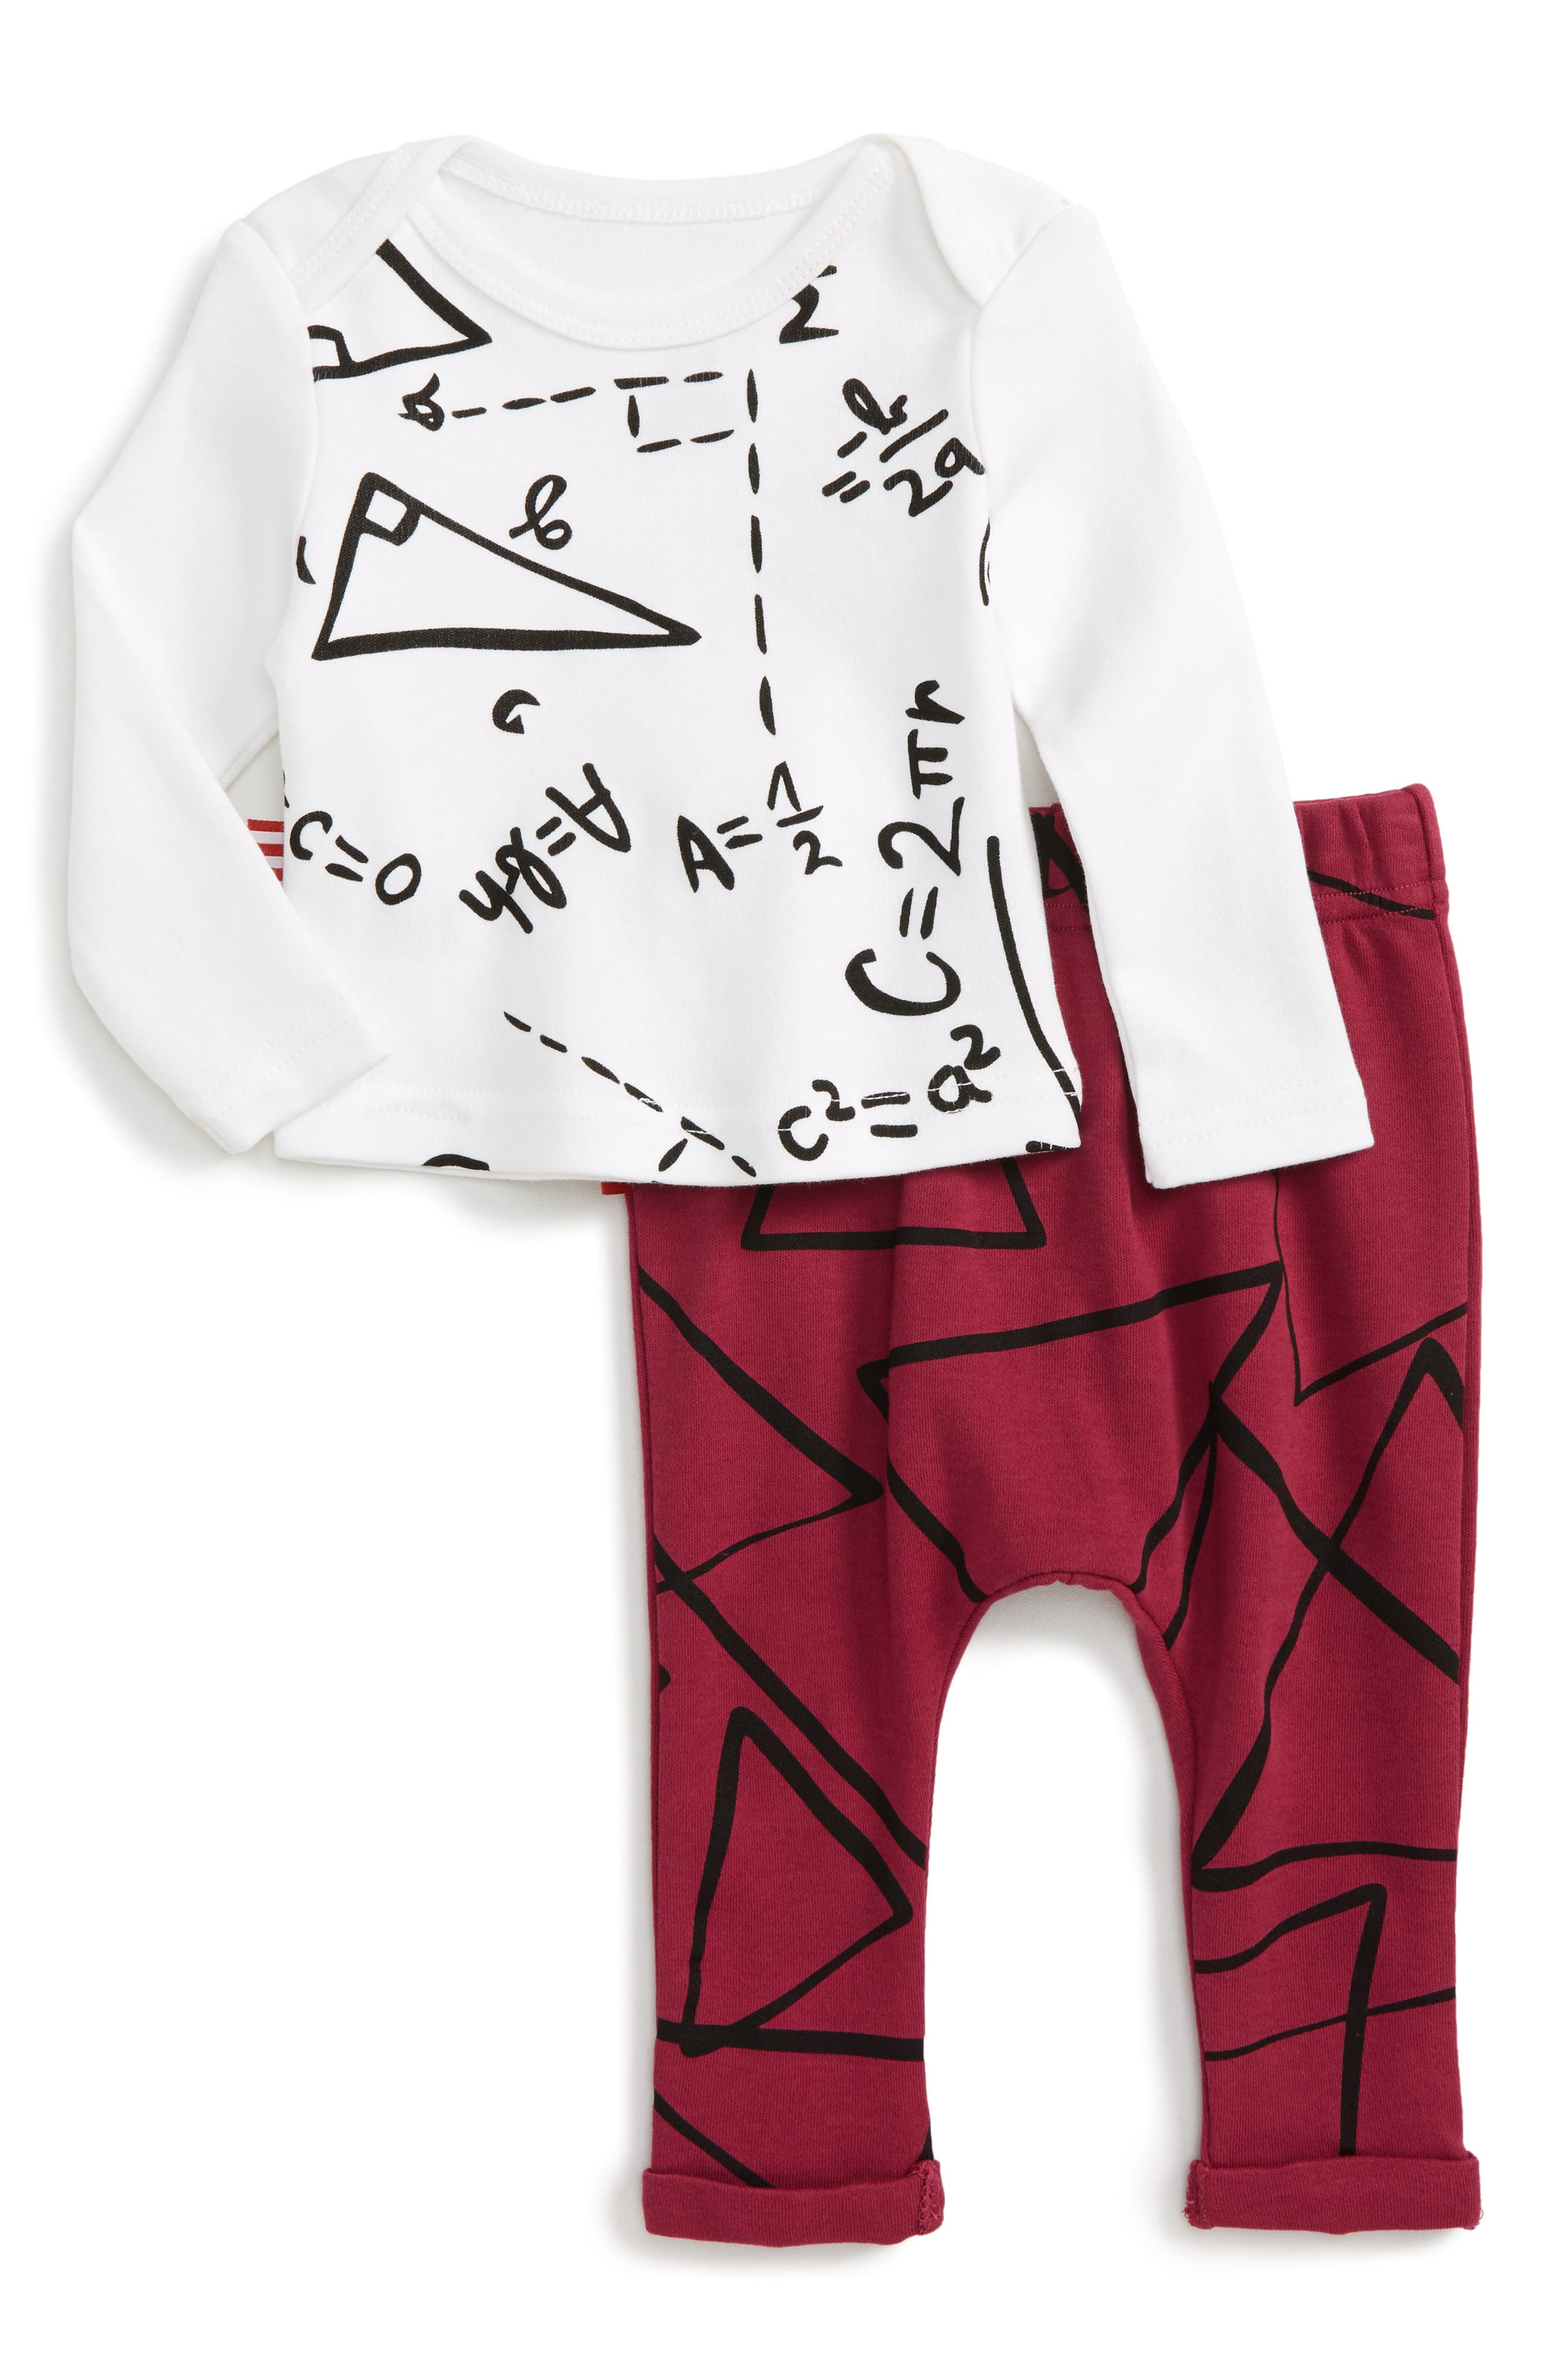 SOOKIbaby Genius at Work Tee & Pants Set (Baby)